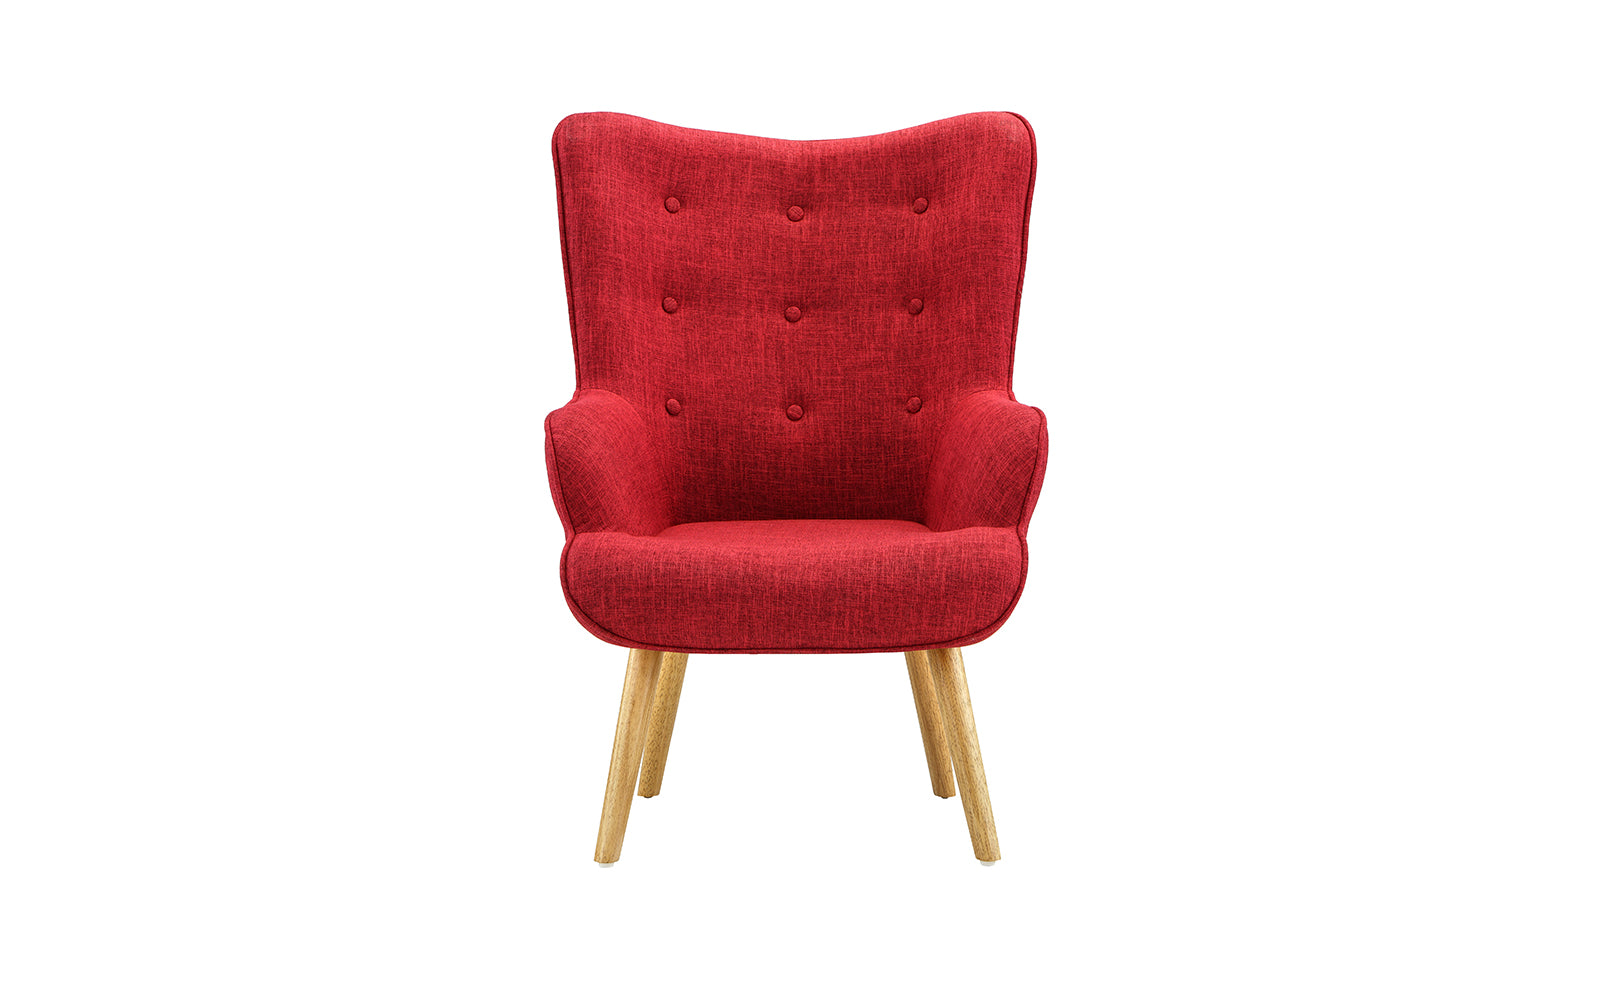 Enzo Modern Tufted Living Room Accent Chair   Sofamania.com